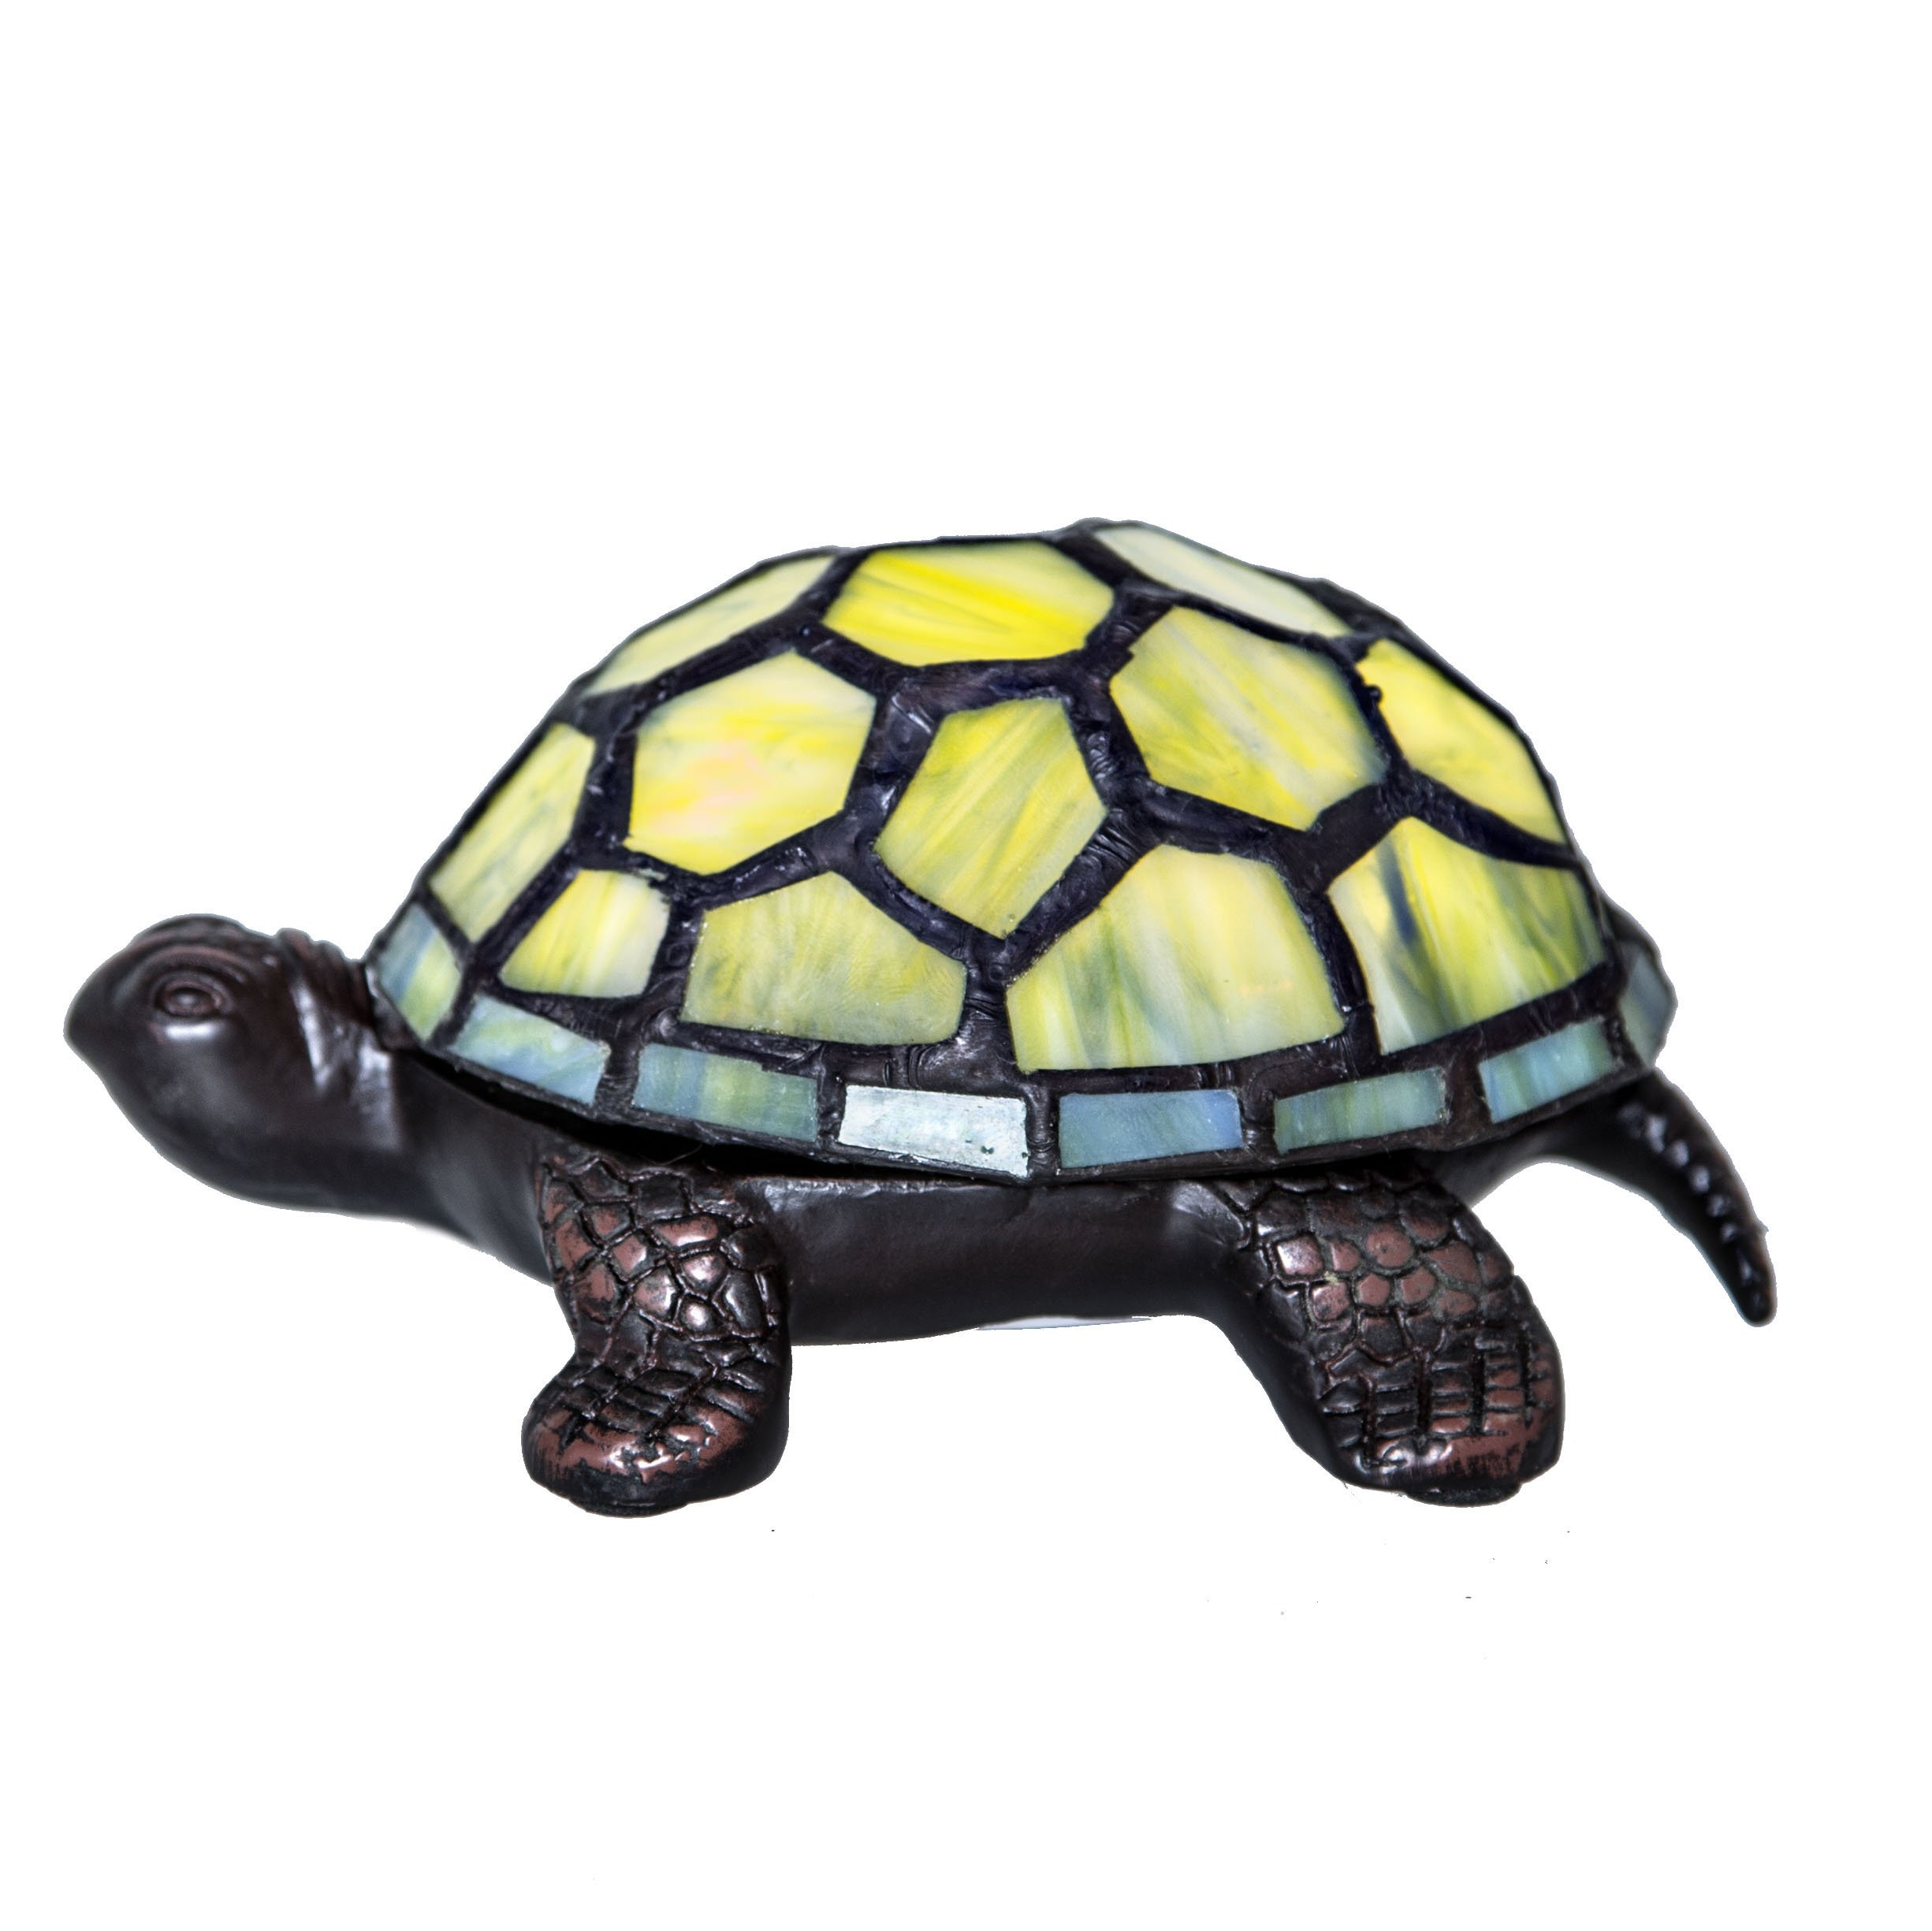 2.5'' Stained Glass LED Cordless Turtle Accent Lamp - Green